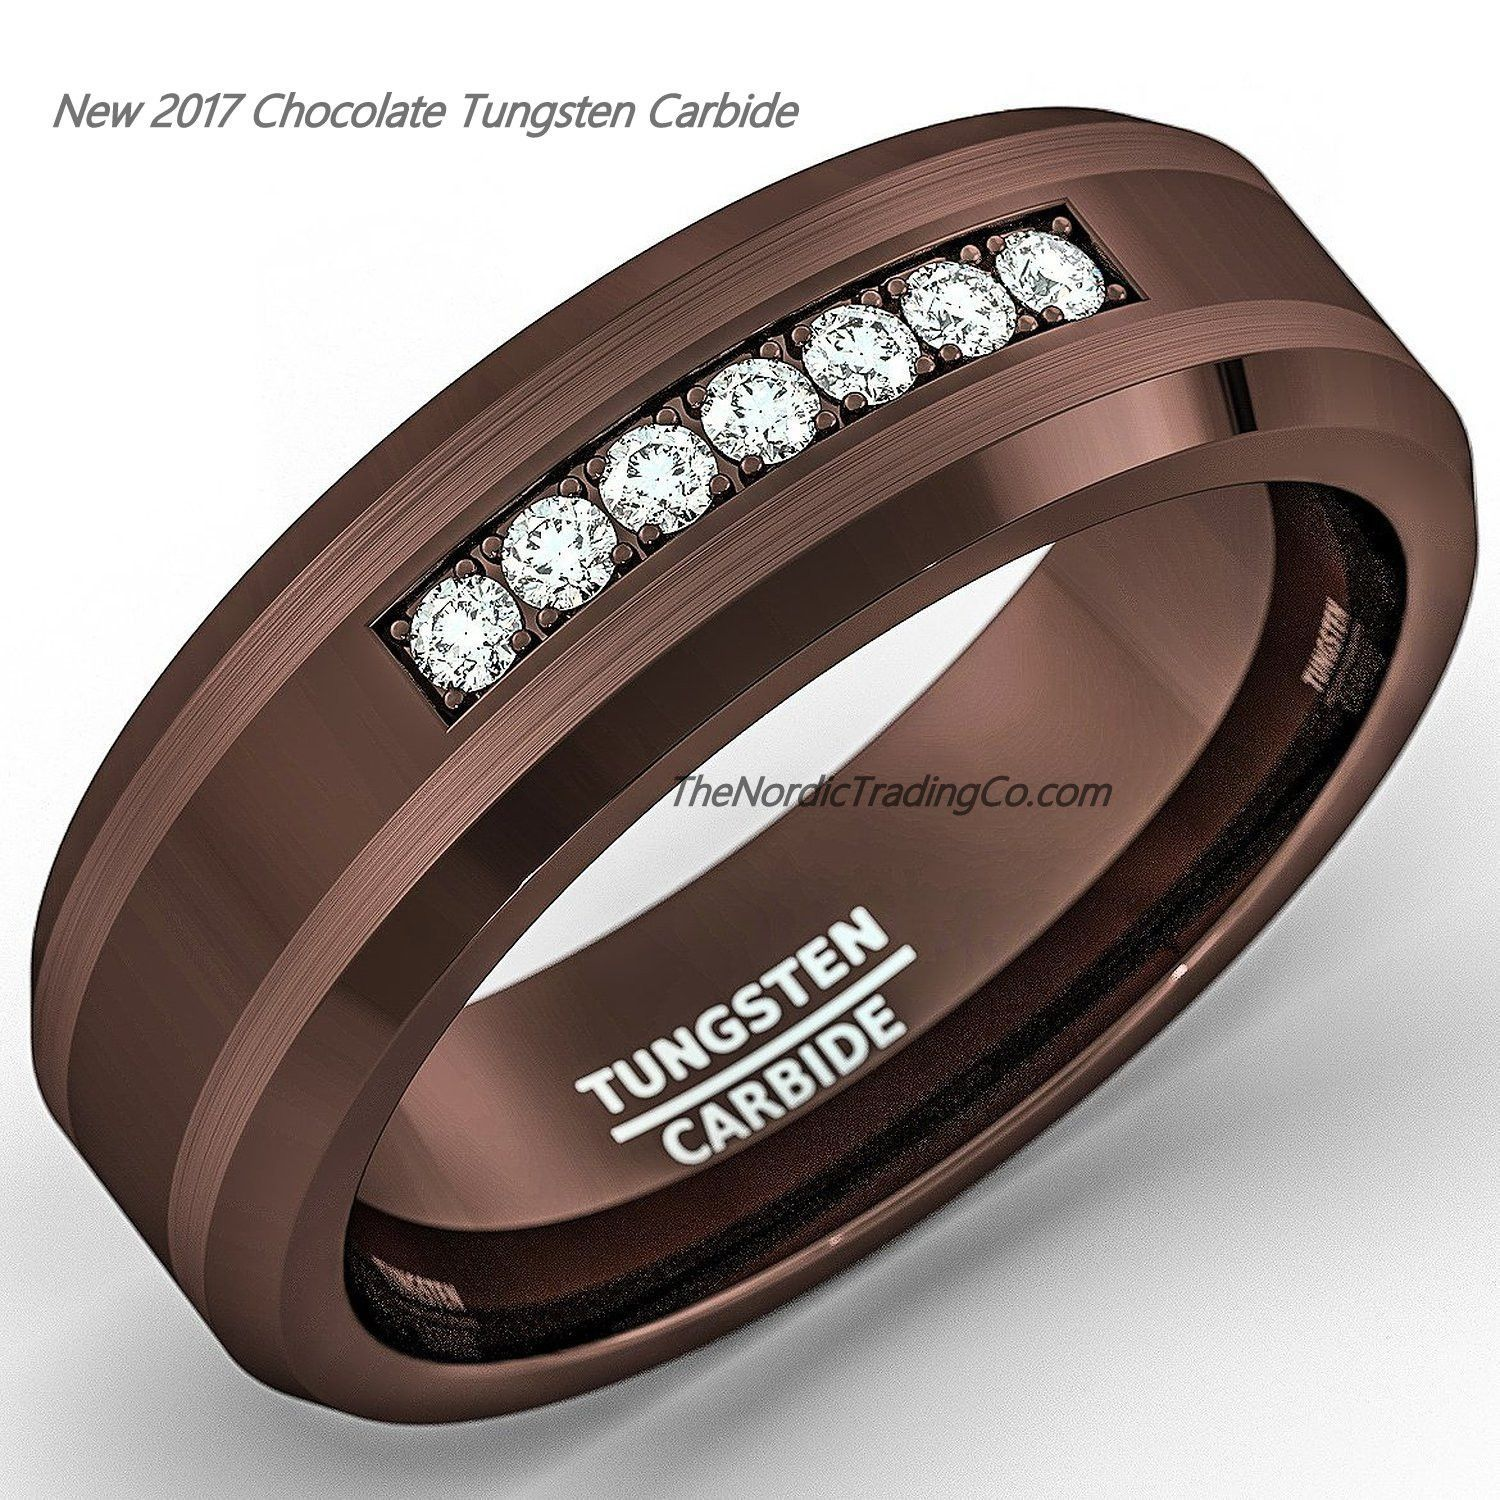 coffe brown tungsten carbide men's wedding ring groom's band